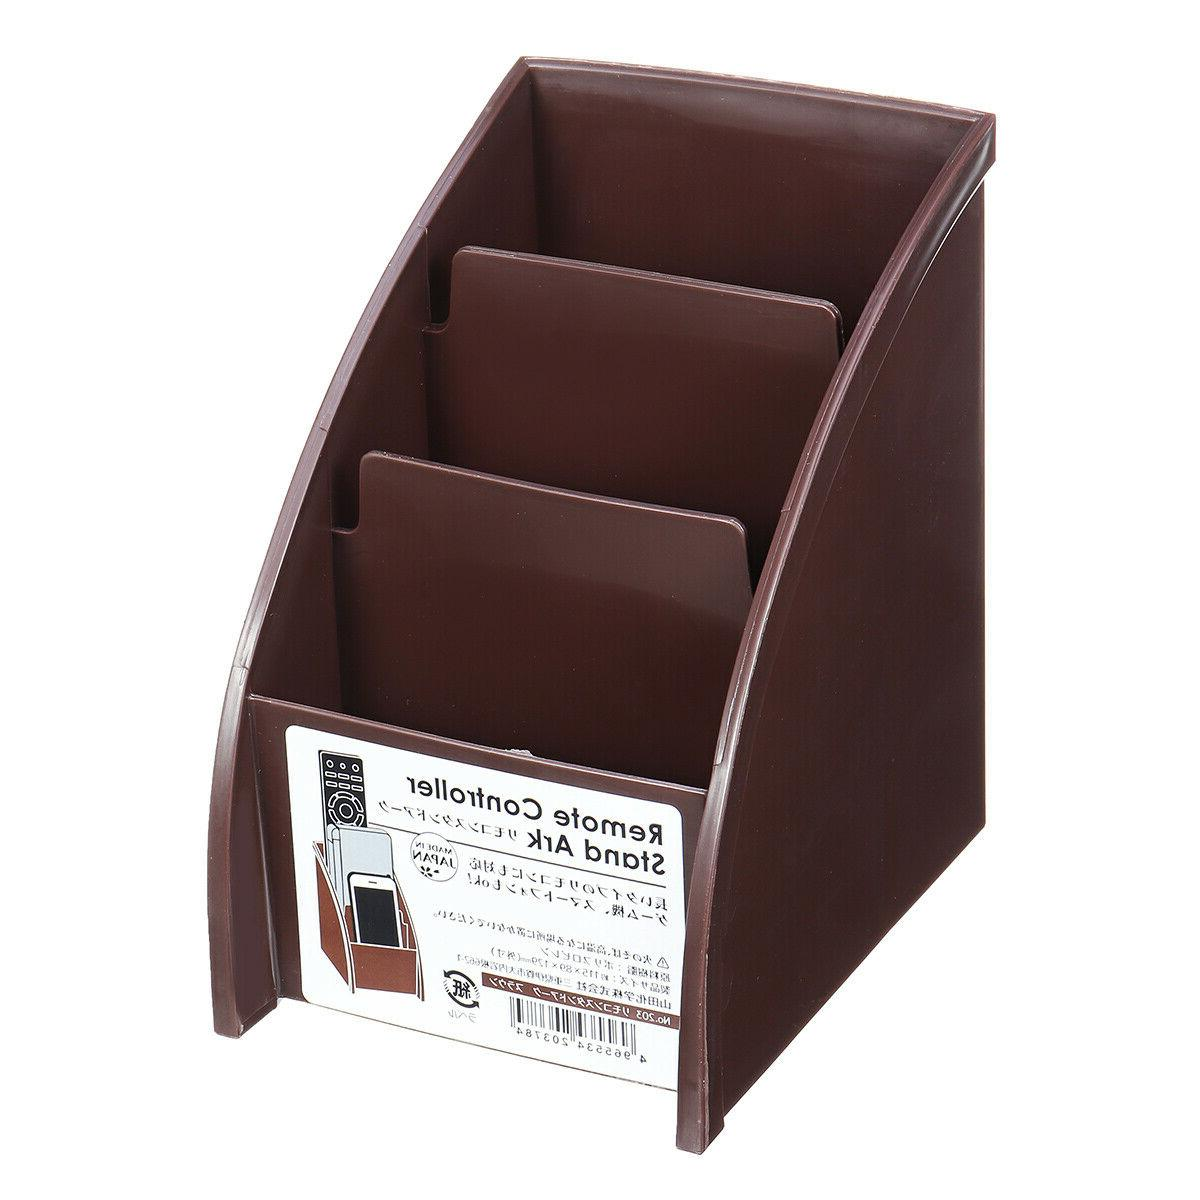 Phone/TV Remote Box Home Holder Brown